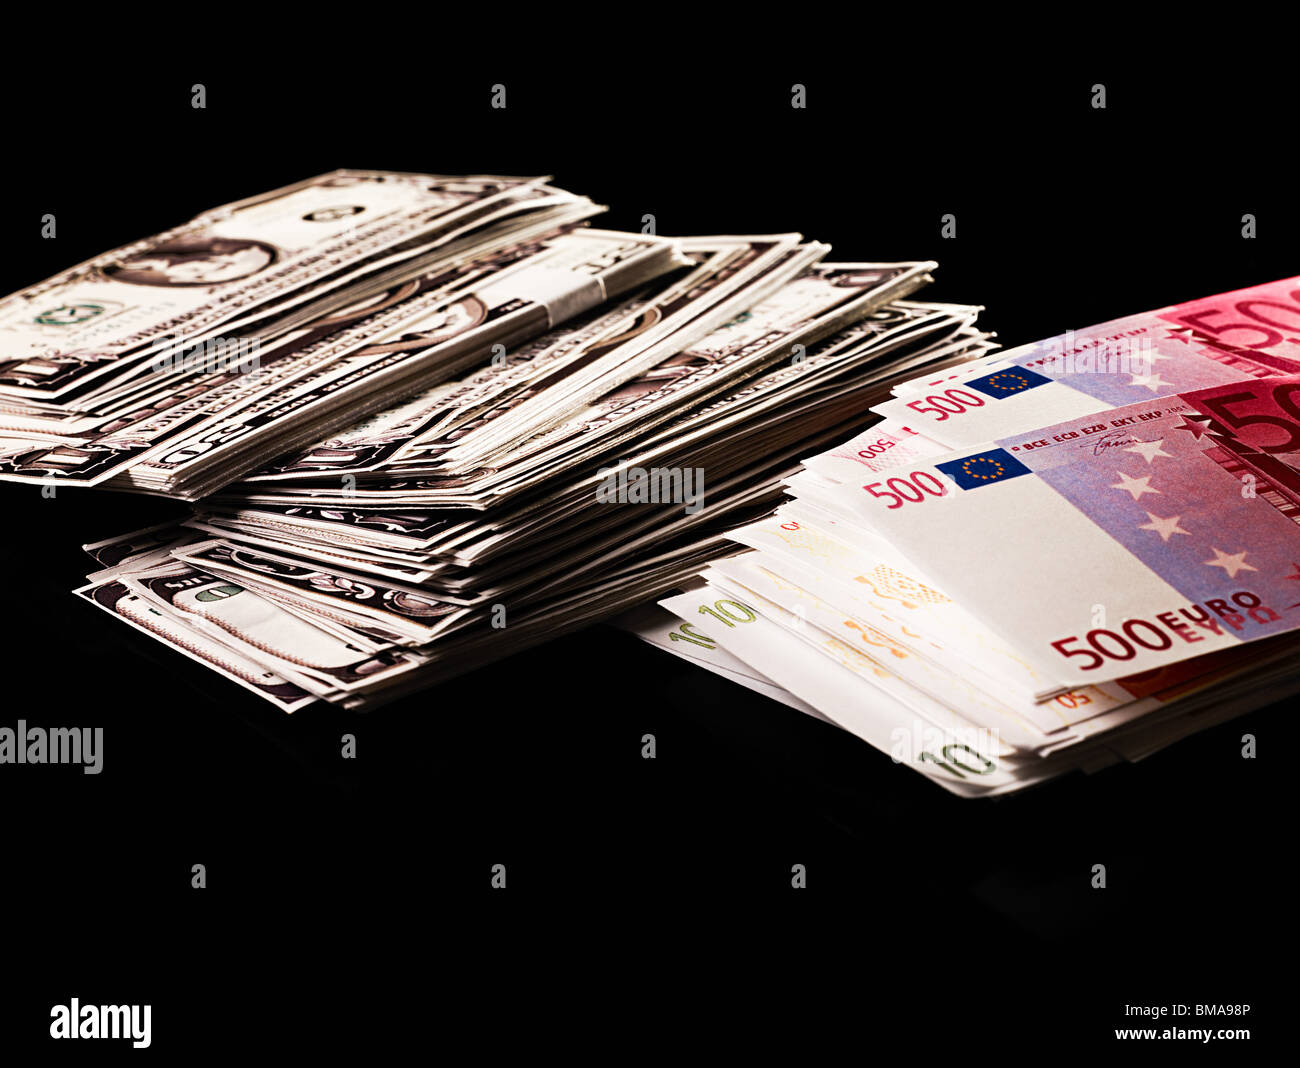 Stacks of dollars and euro banknotes - Stock Image